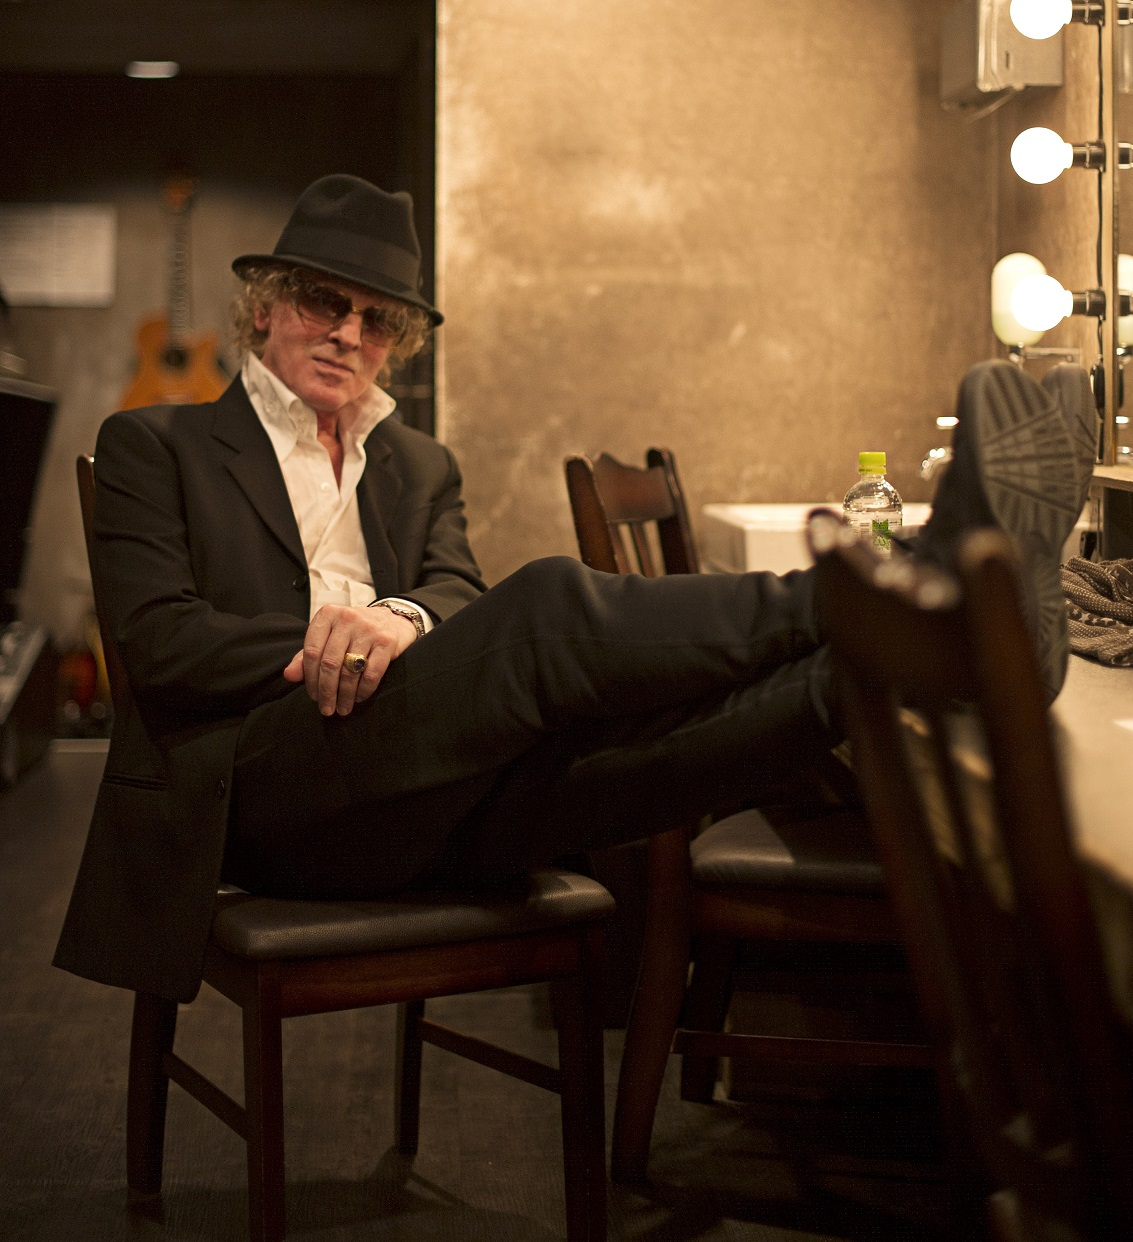 Ian Hunter to release new album also Listen to his new Bowie tribute song